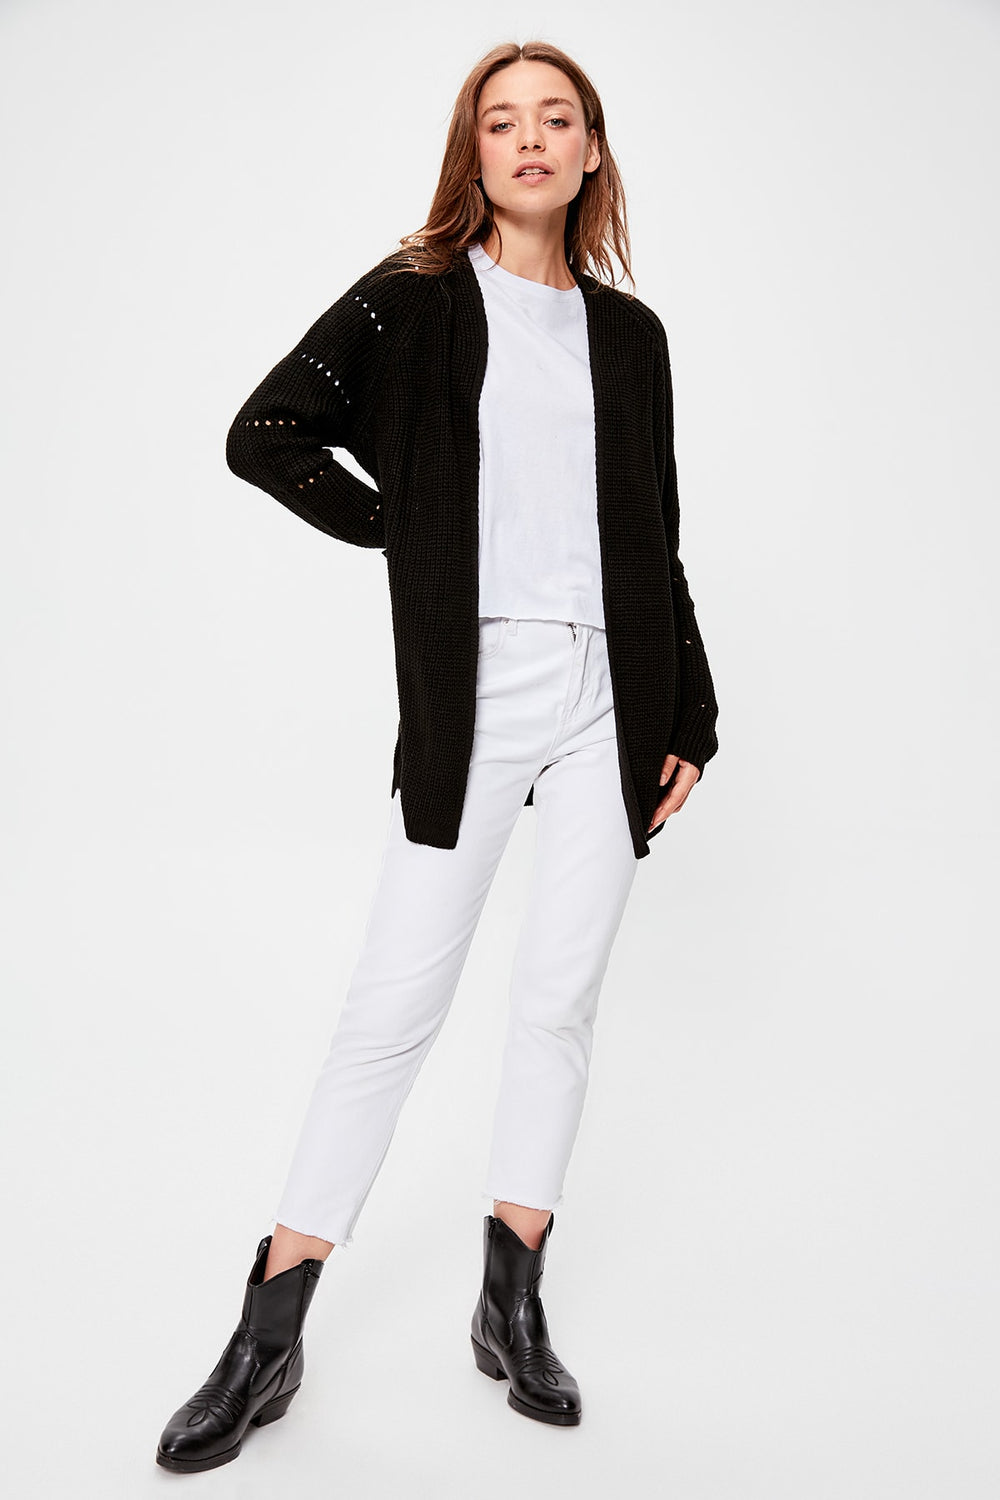 Miss Zut Miss Zut Black Sleeve Detail Sweater Cardigan Miss Zut &CO